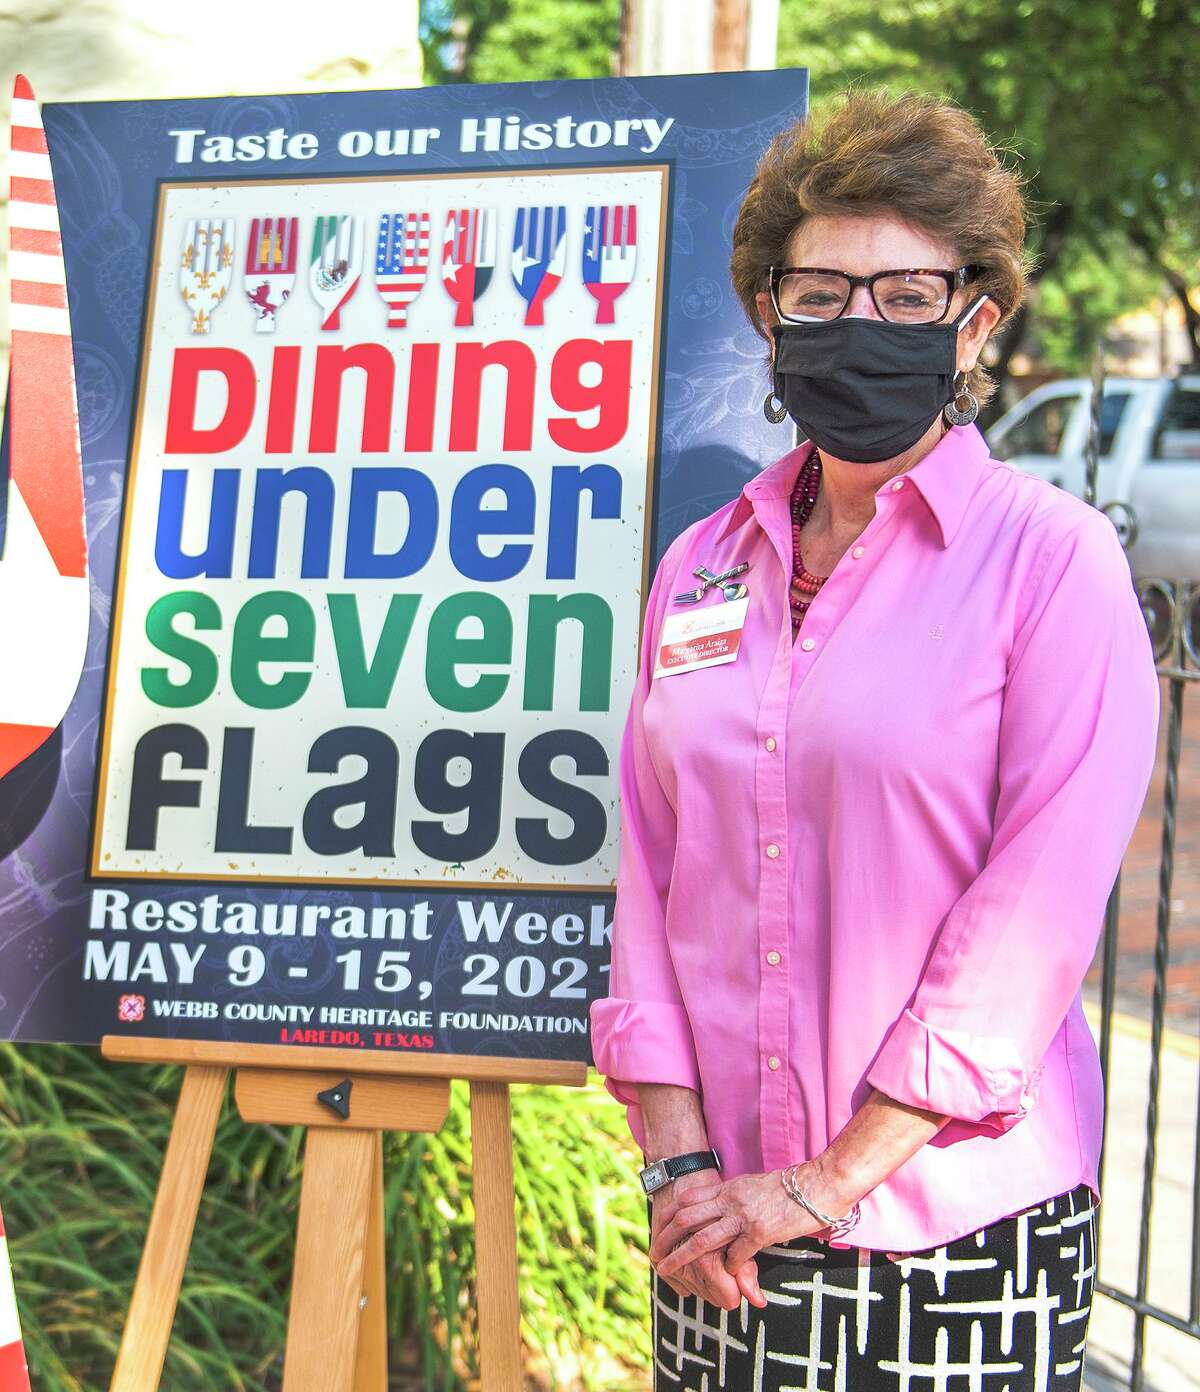 Webb County Heritage Foundation Executive Director Margarita Araiza poses for photos, Tuesday, Mar. 6, 2021, at La Posada Hotel's courtyard next to a sign promoting the foundation's restaurant week.